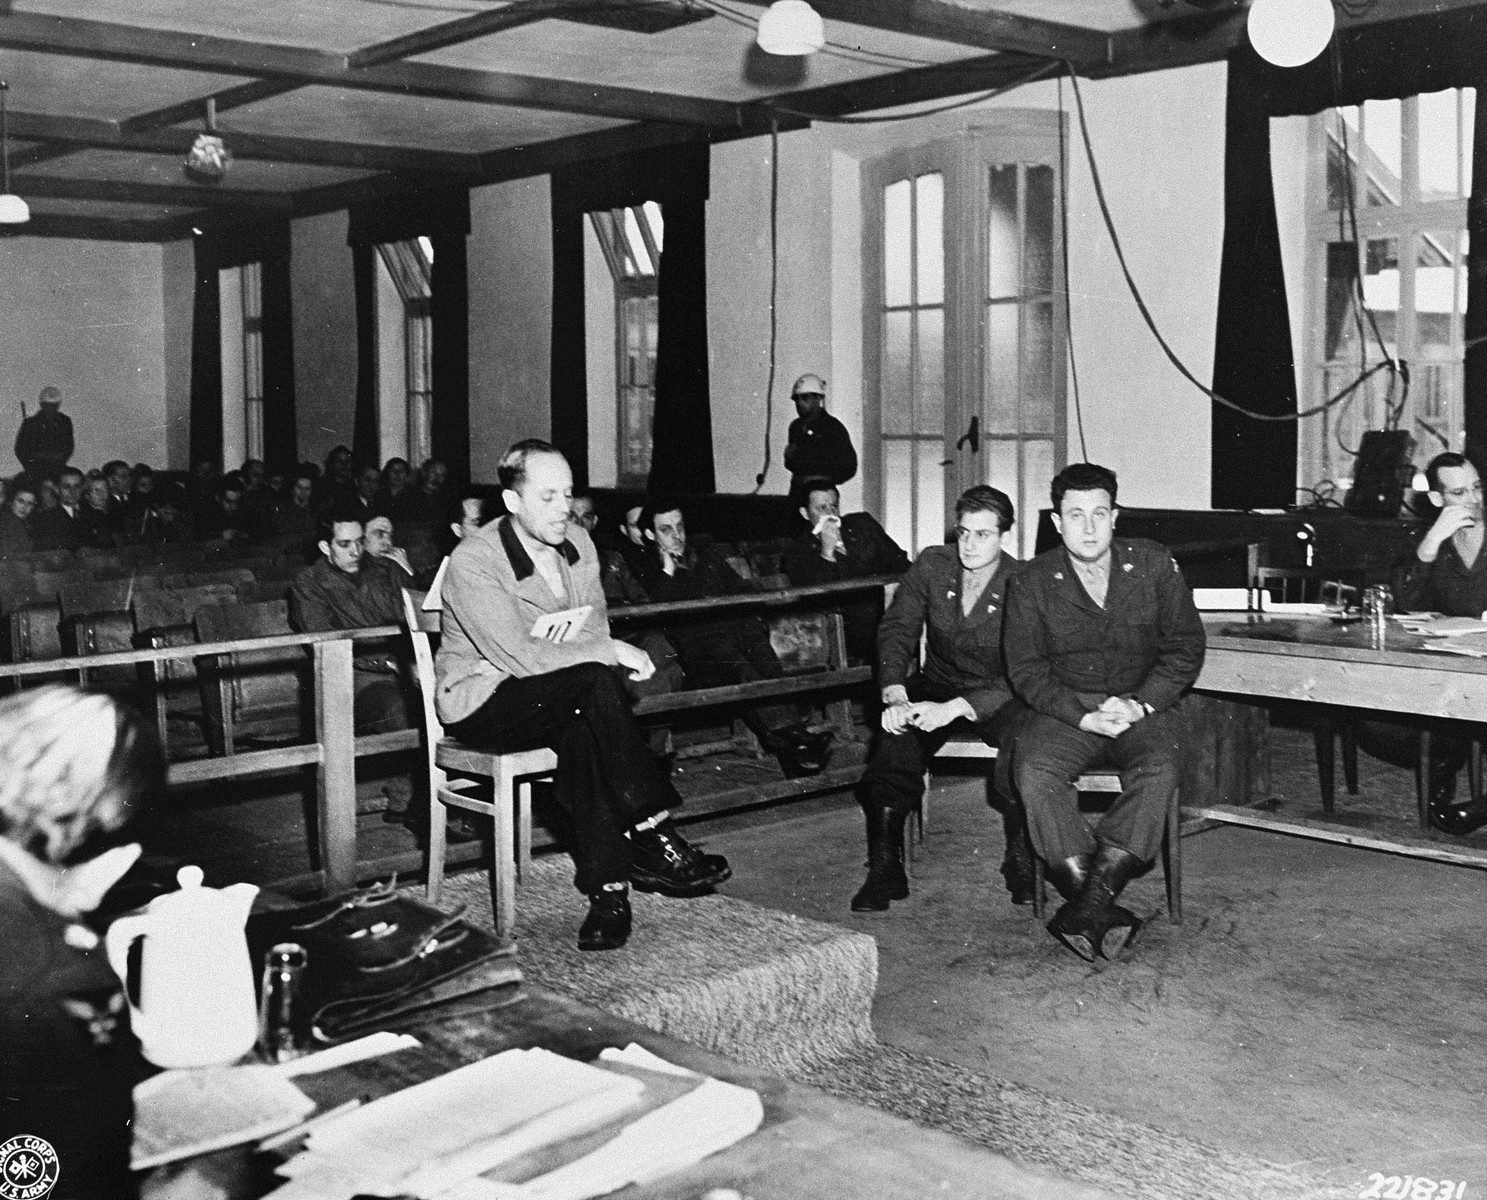 Dr. Fritz Hintermeyer, the former chief physician at Dachau, describes how 400 prisoners died daily during an epidemic, during his testimony at the trial of former camp personnel and prisoners from Dachau.